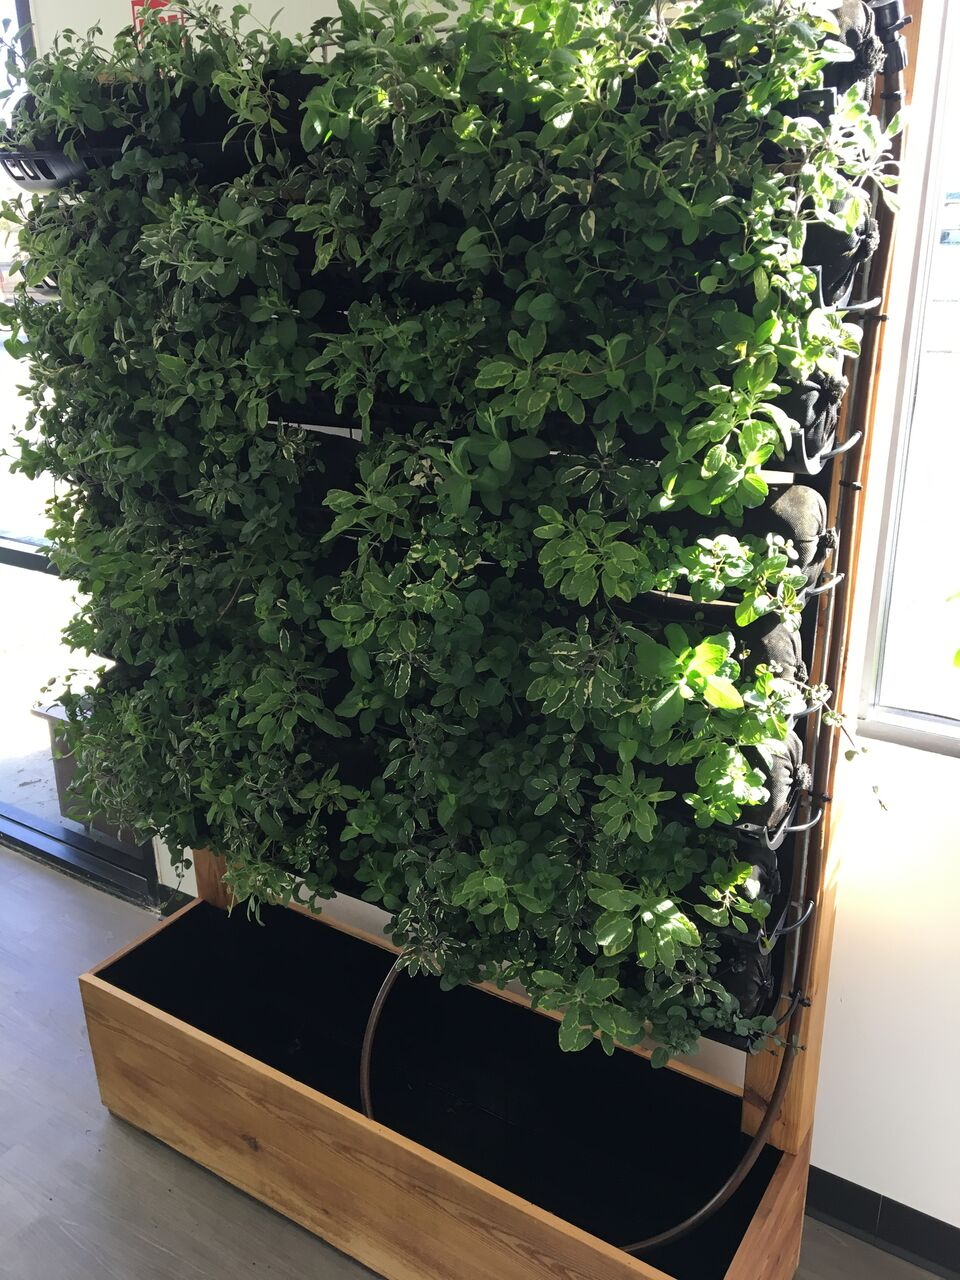 unit grown out in herbs.jpeg